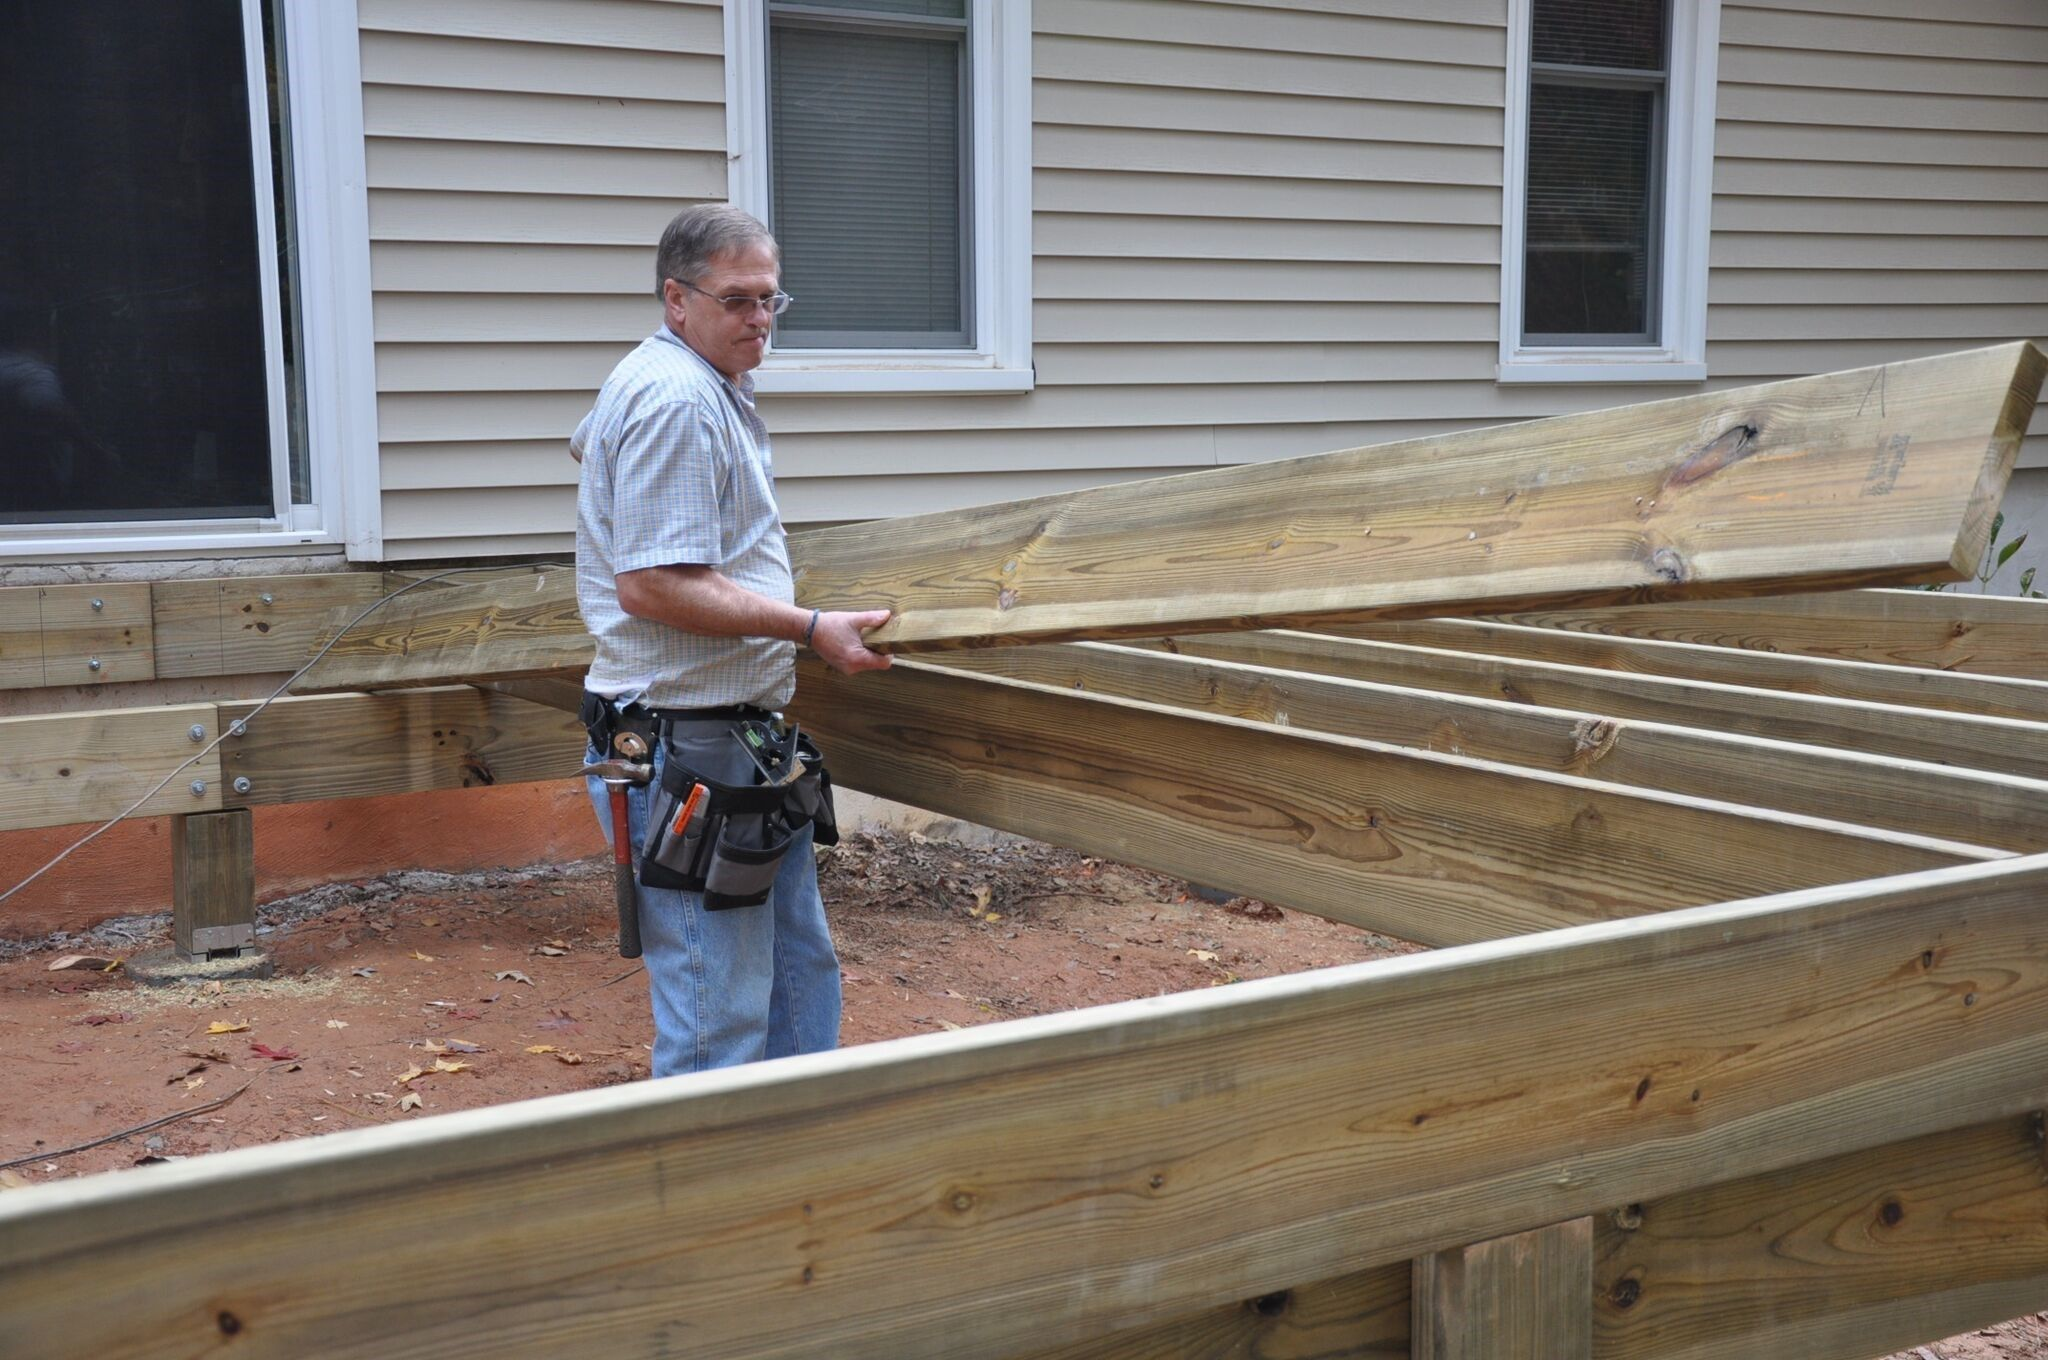 Explore 55 Articles Explaining Connections Between Joists, Beams And Support  Posts With Carpenters Tools To Build ...